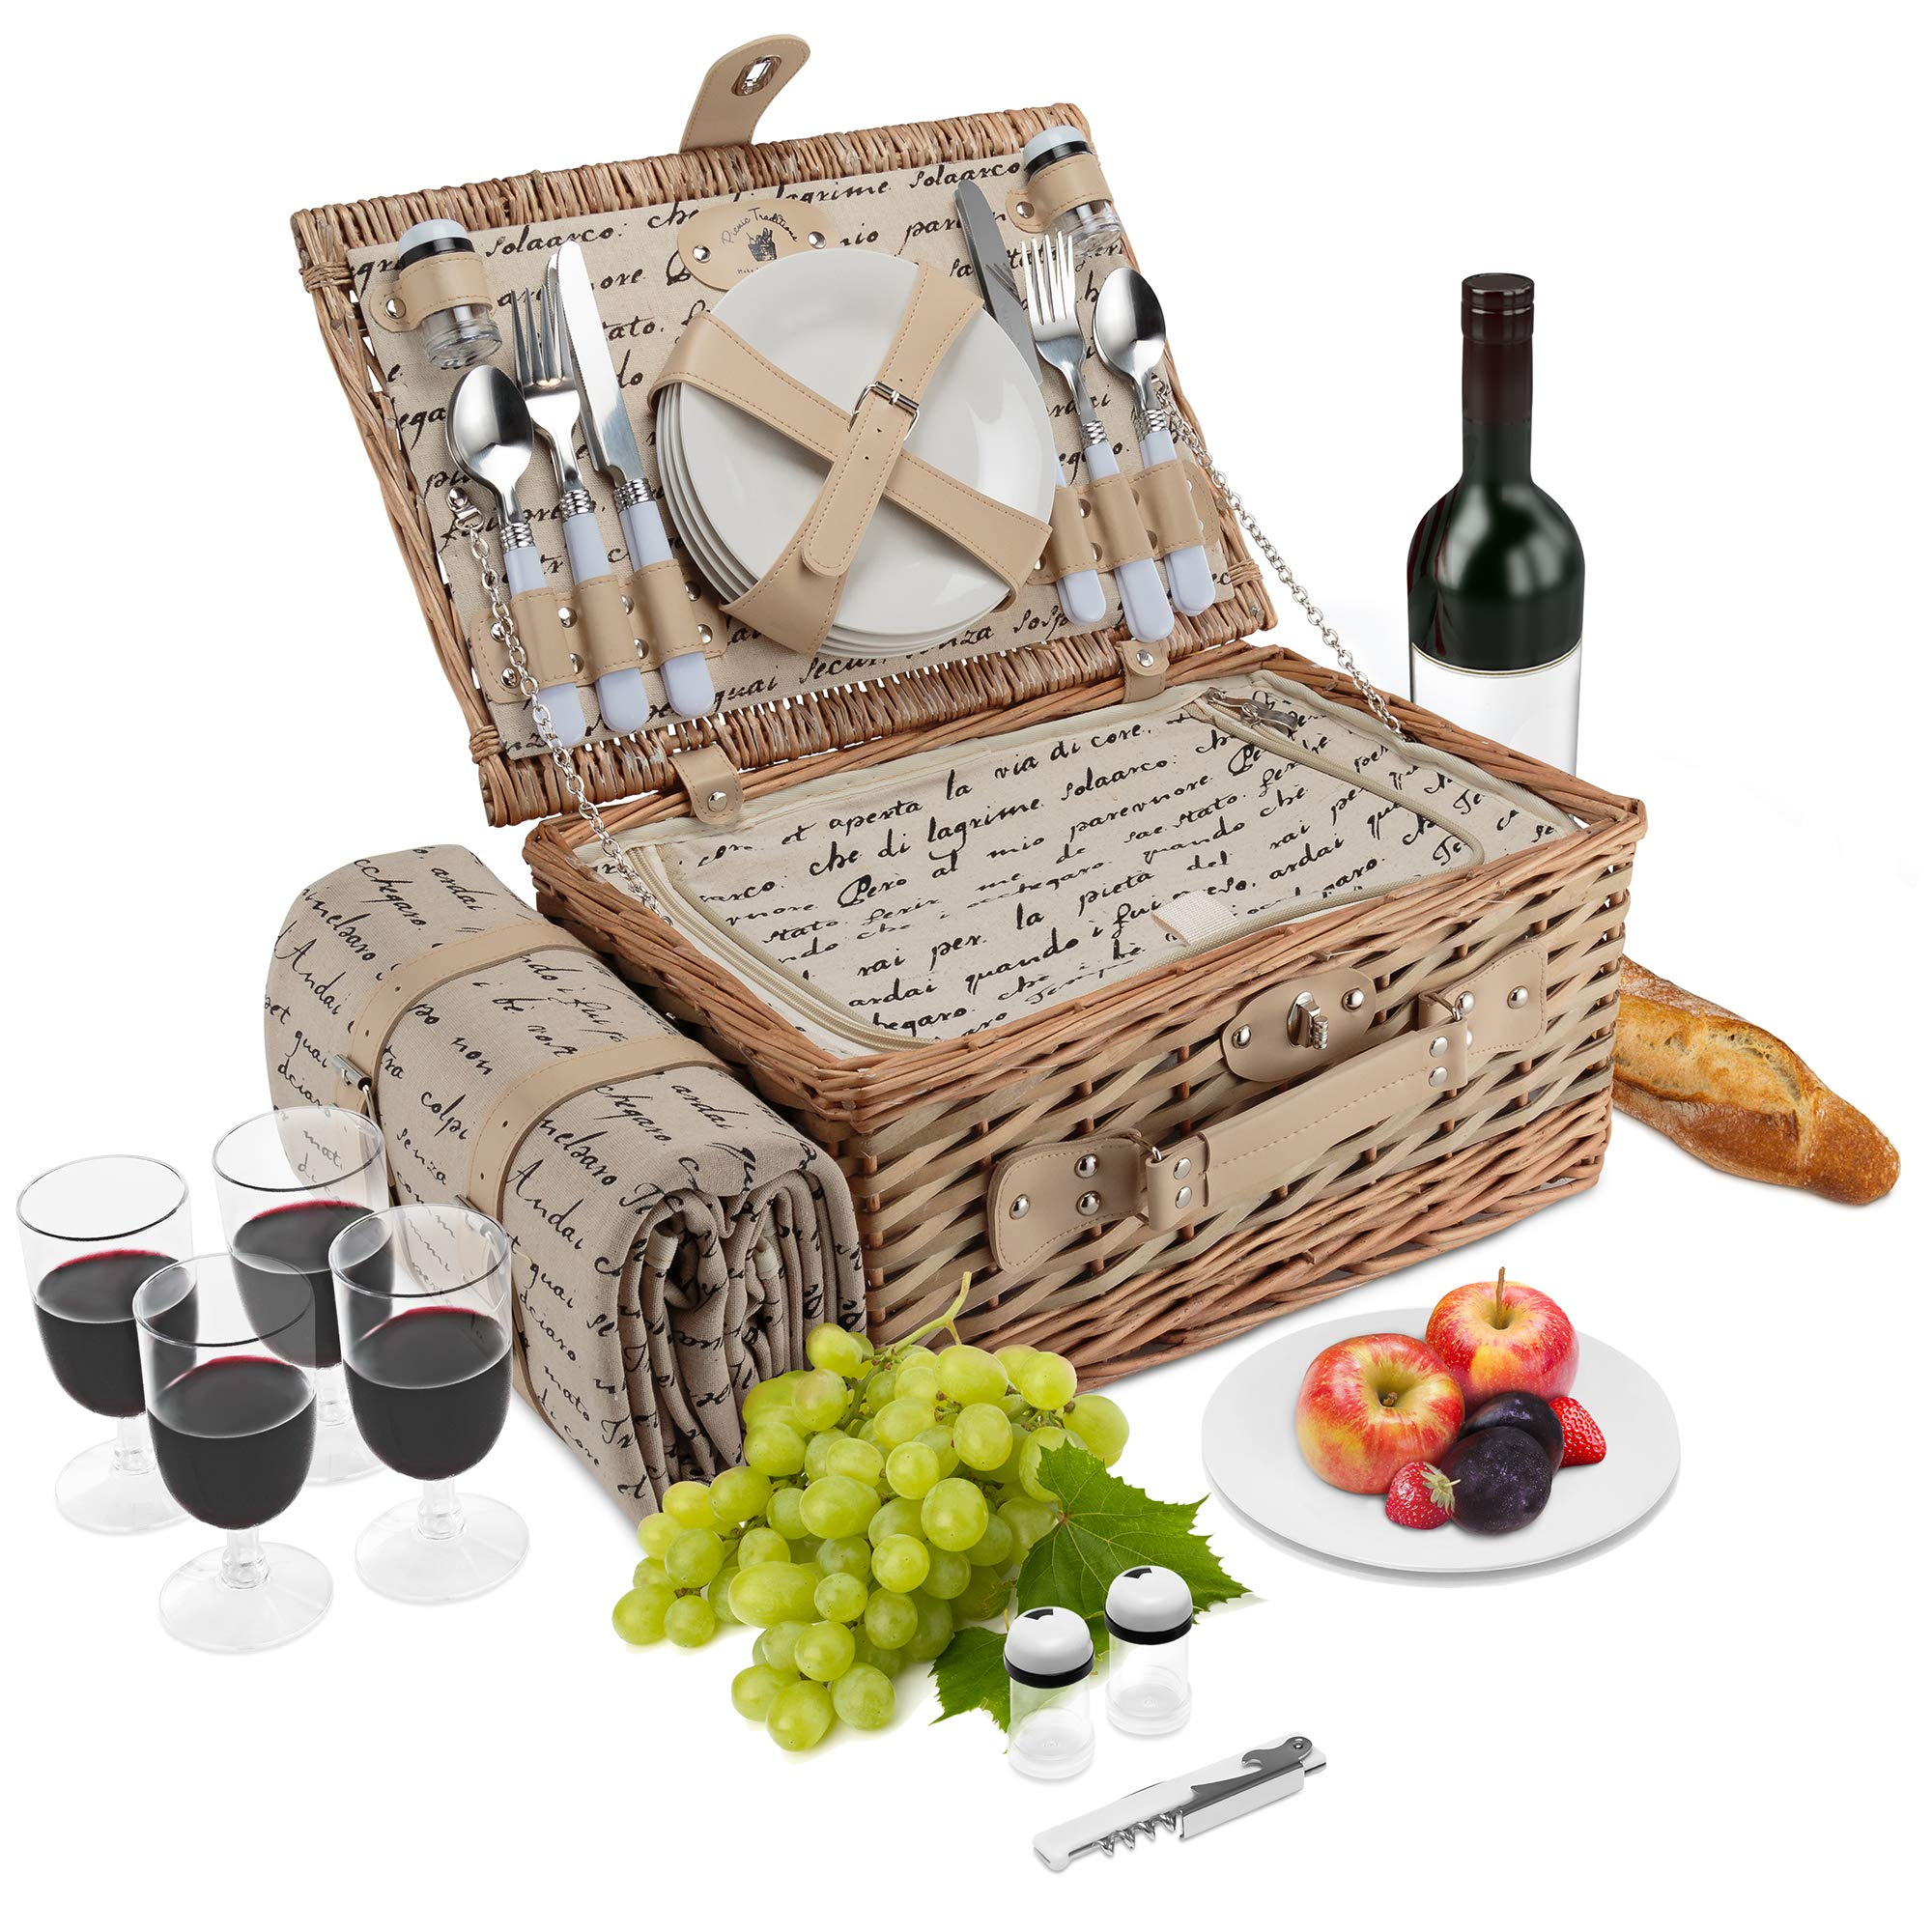 Wicker Picnic Basket | 4 Person Vintage Style Woven Willow Picnic Hamper with Blanket | Built-In Cooler | Ceramic Plates, Stainless Steel Silverware, Wine Glasses, S/P Shakers, Bottle Opener (Natural)